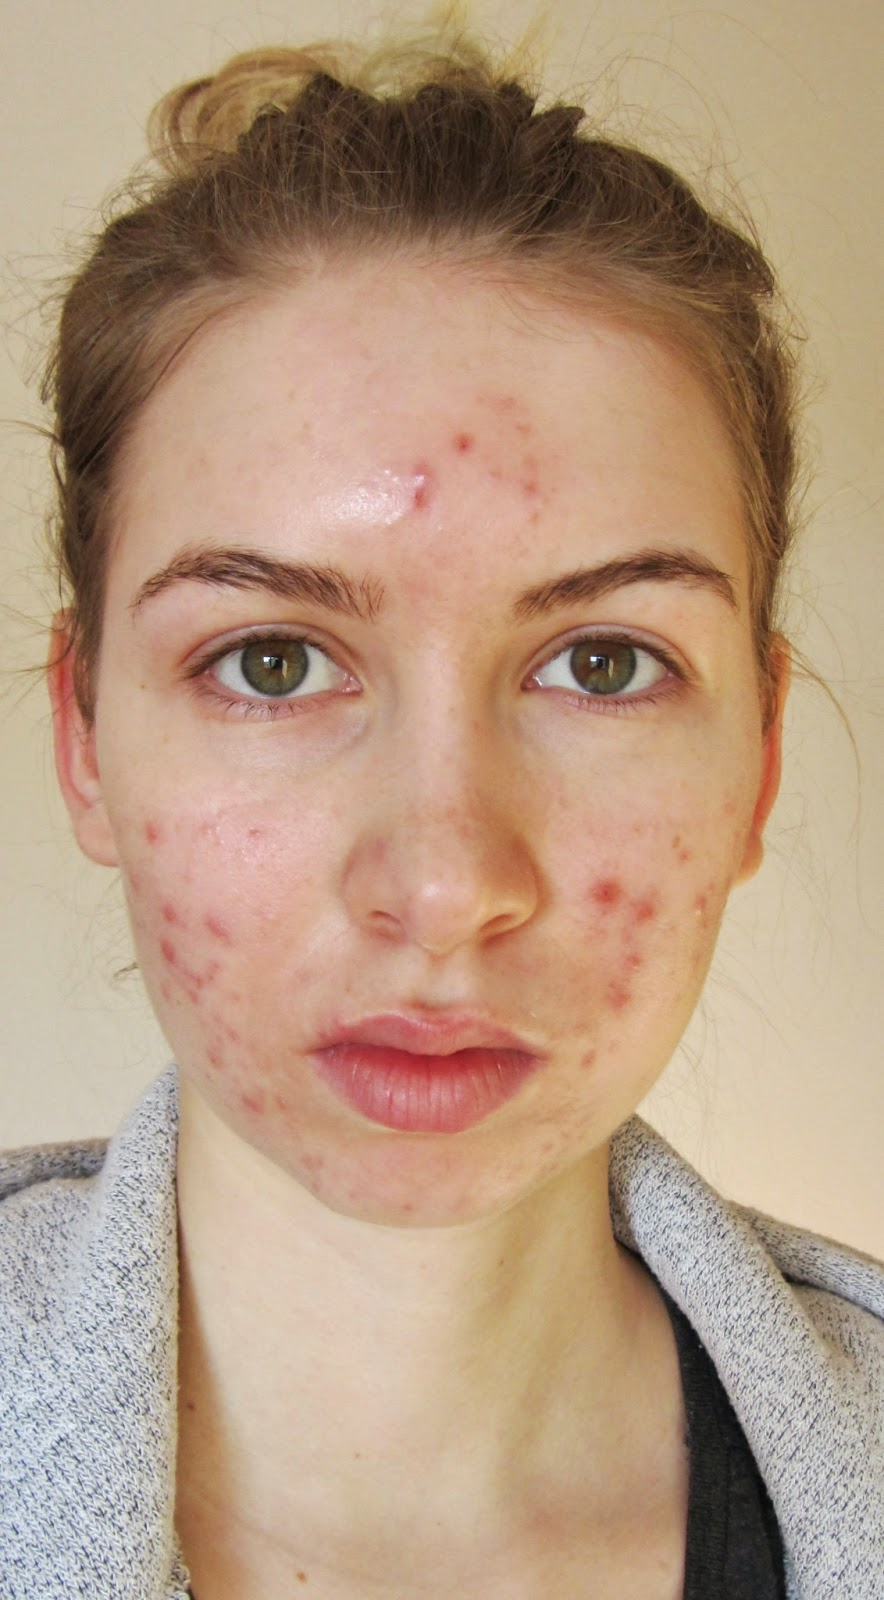 dangers from accutane